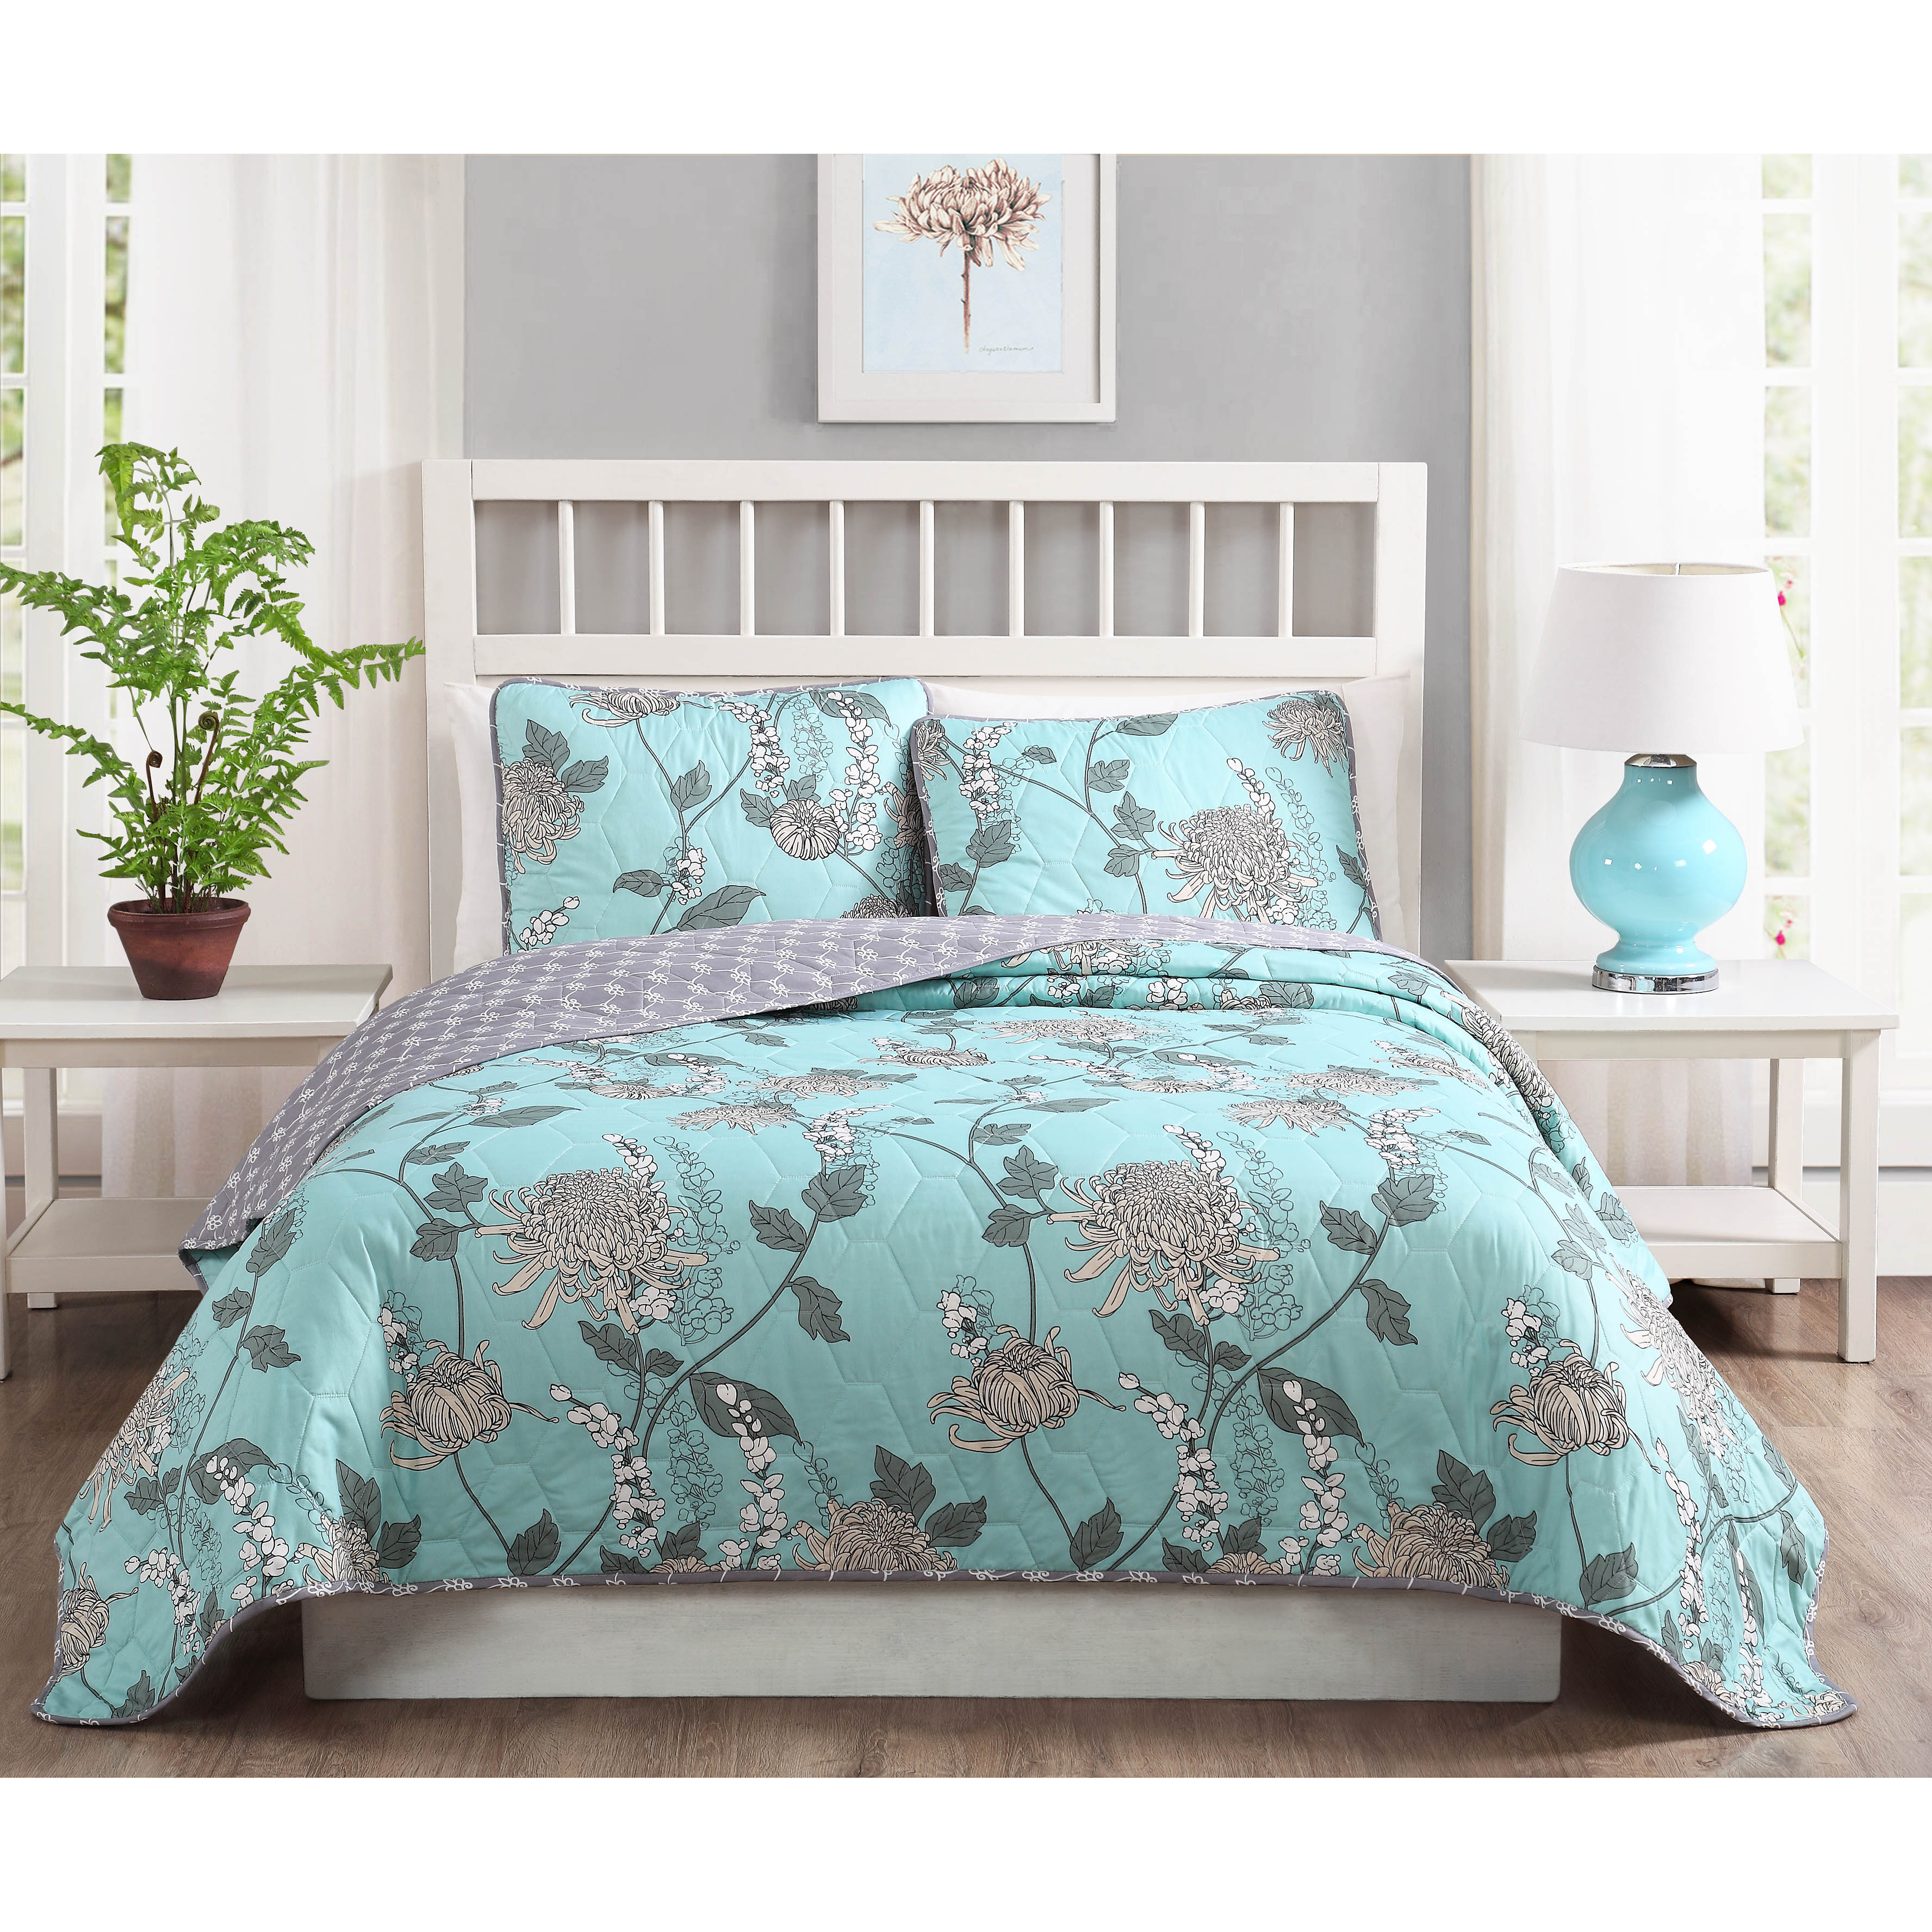 Amelie 3-Piece Reversible Quilt Set